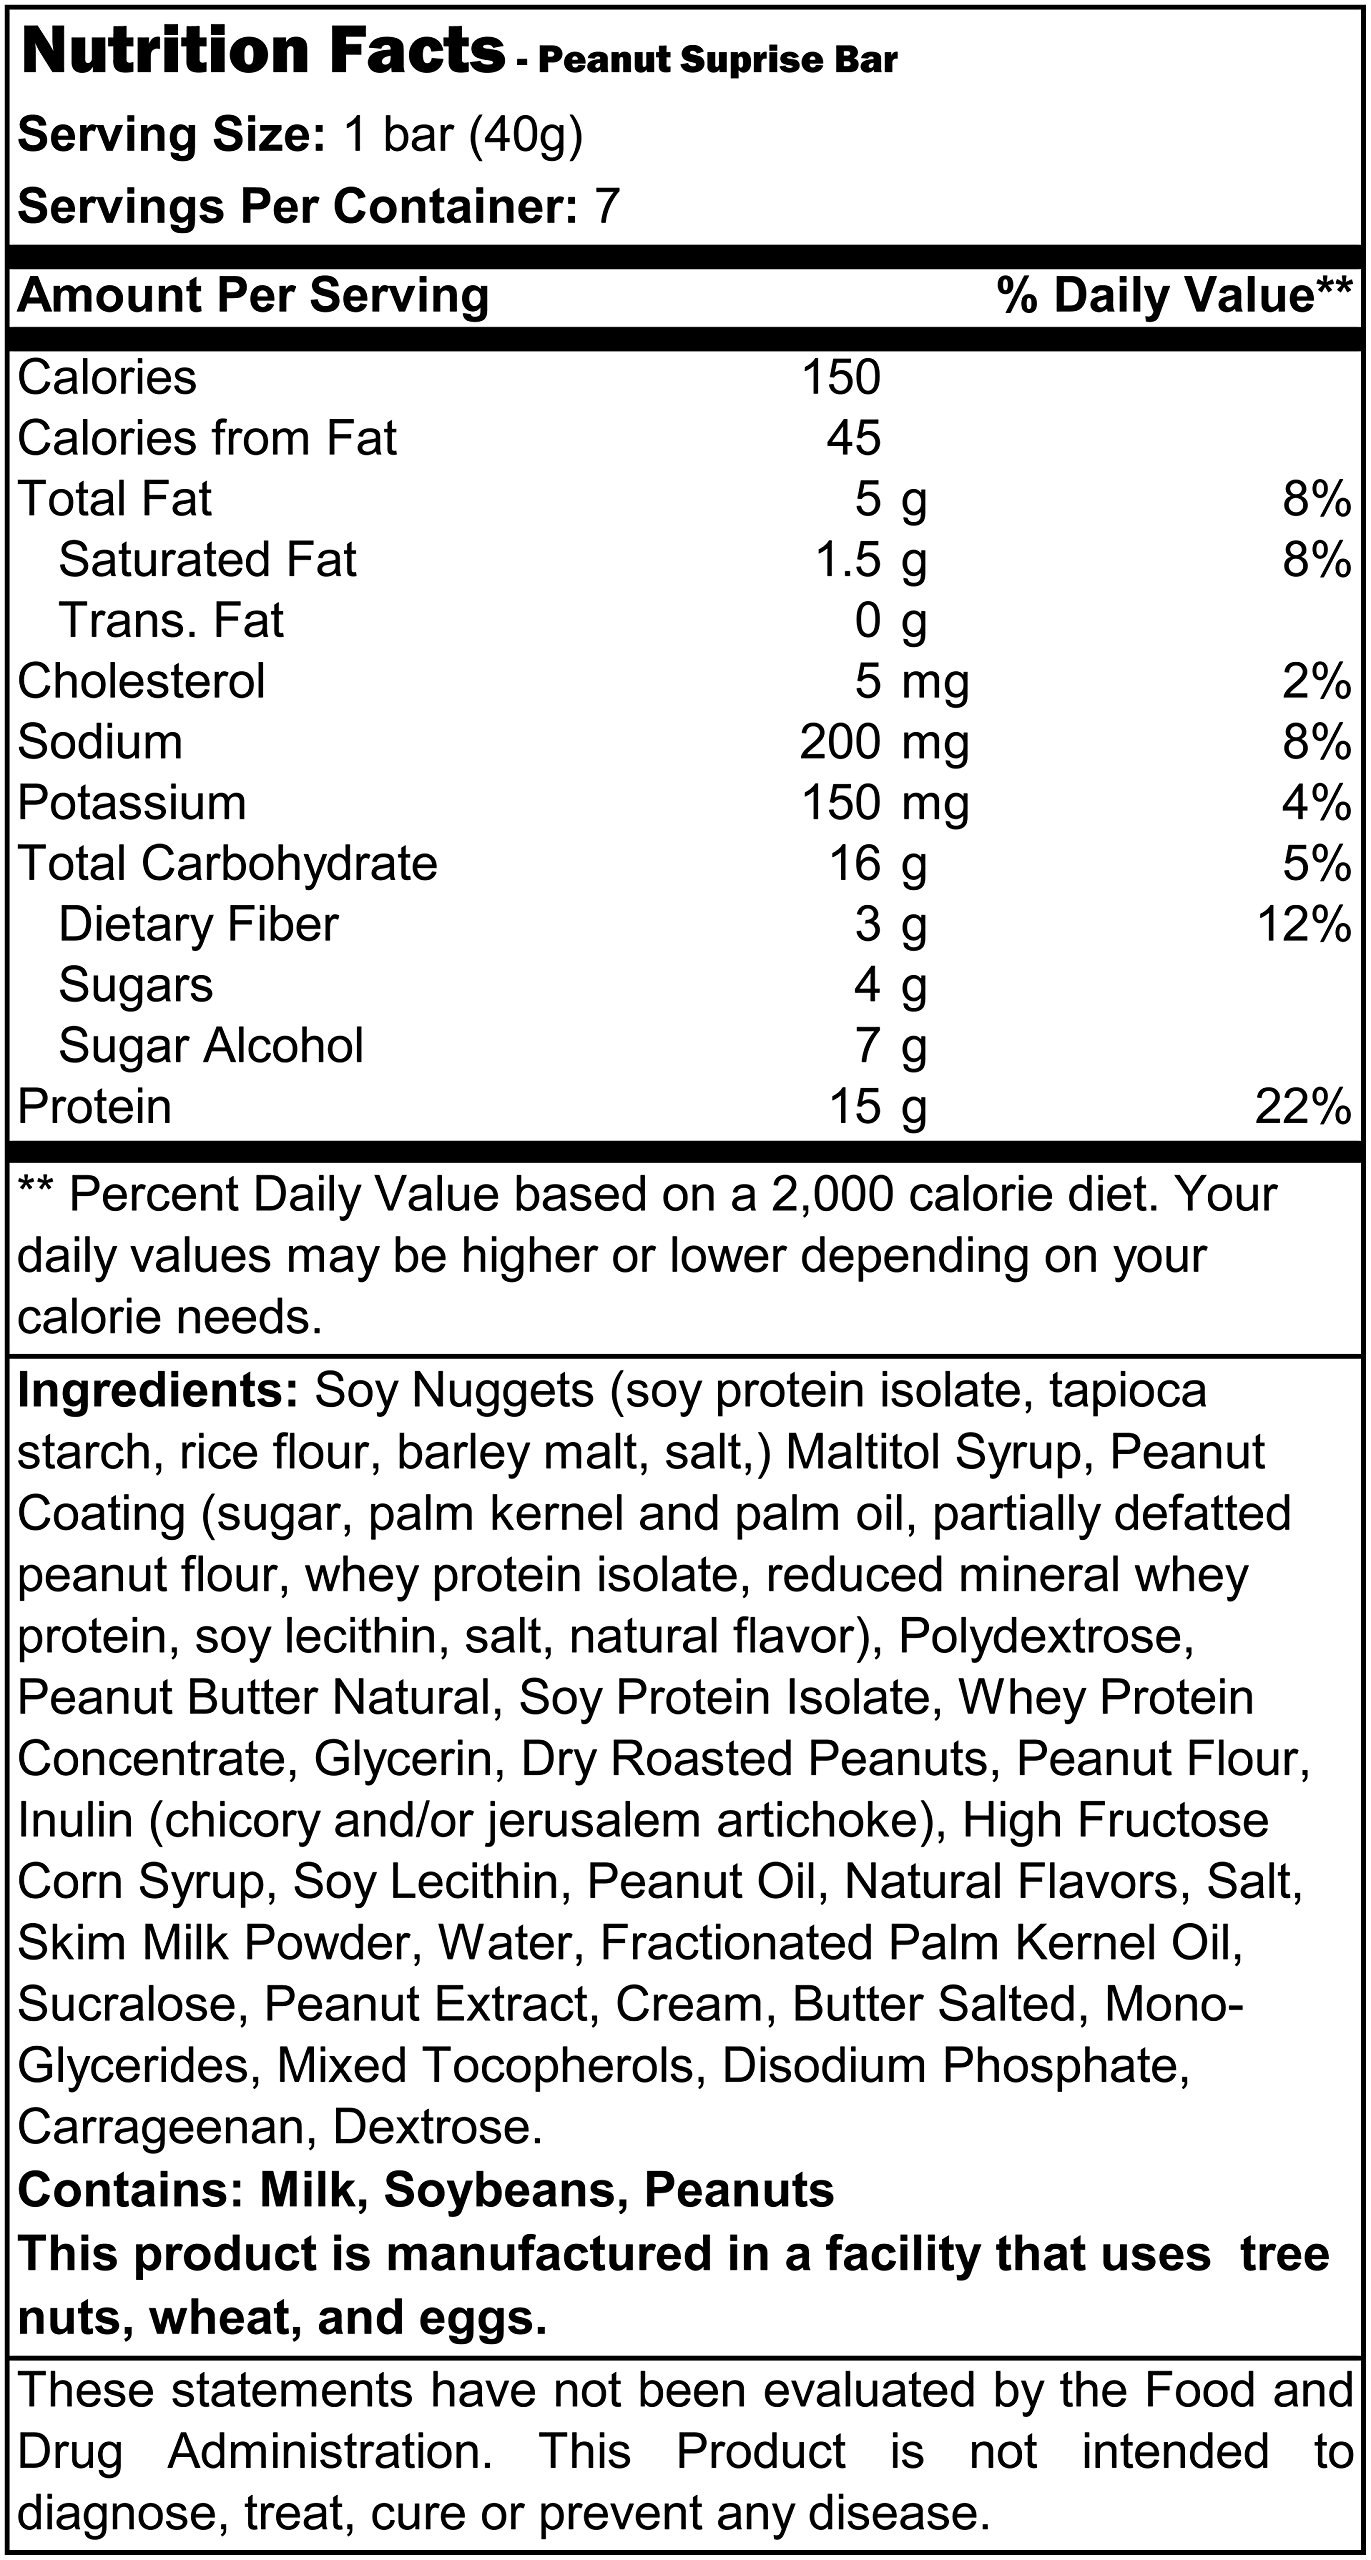 Protidiet Peanut Surprise High Protein Bar 9.9 oz (Box of 7) by Protidiet (Image #1)